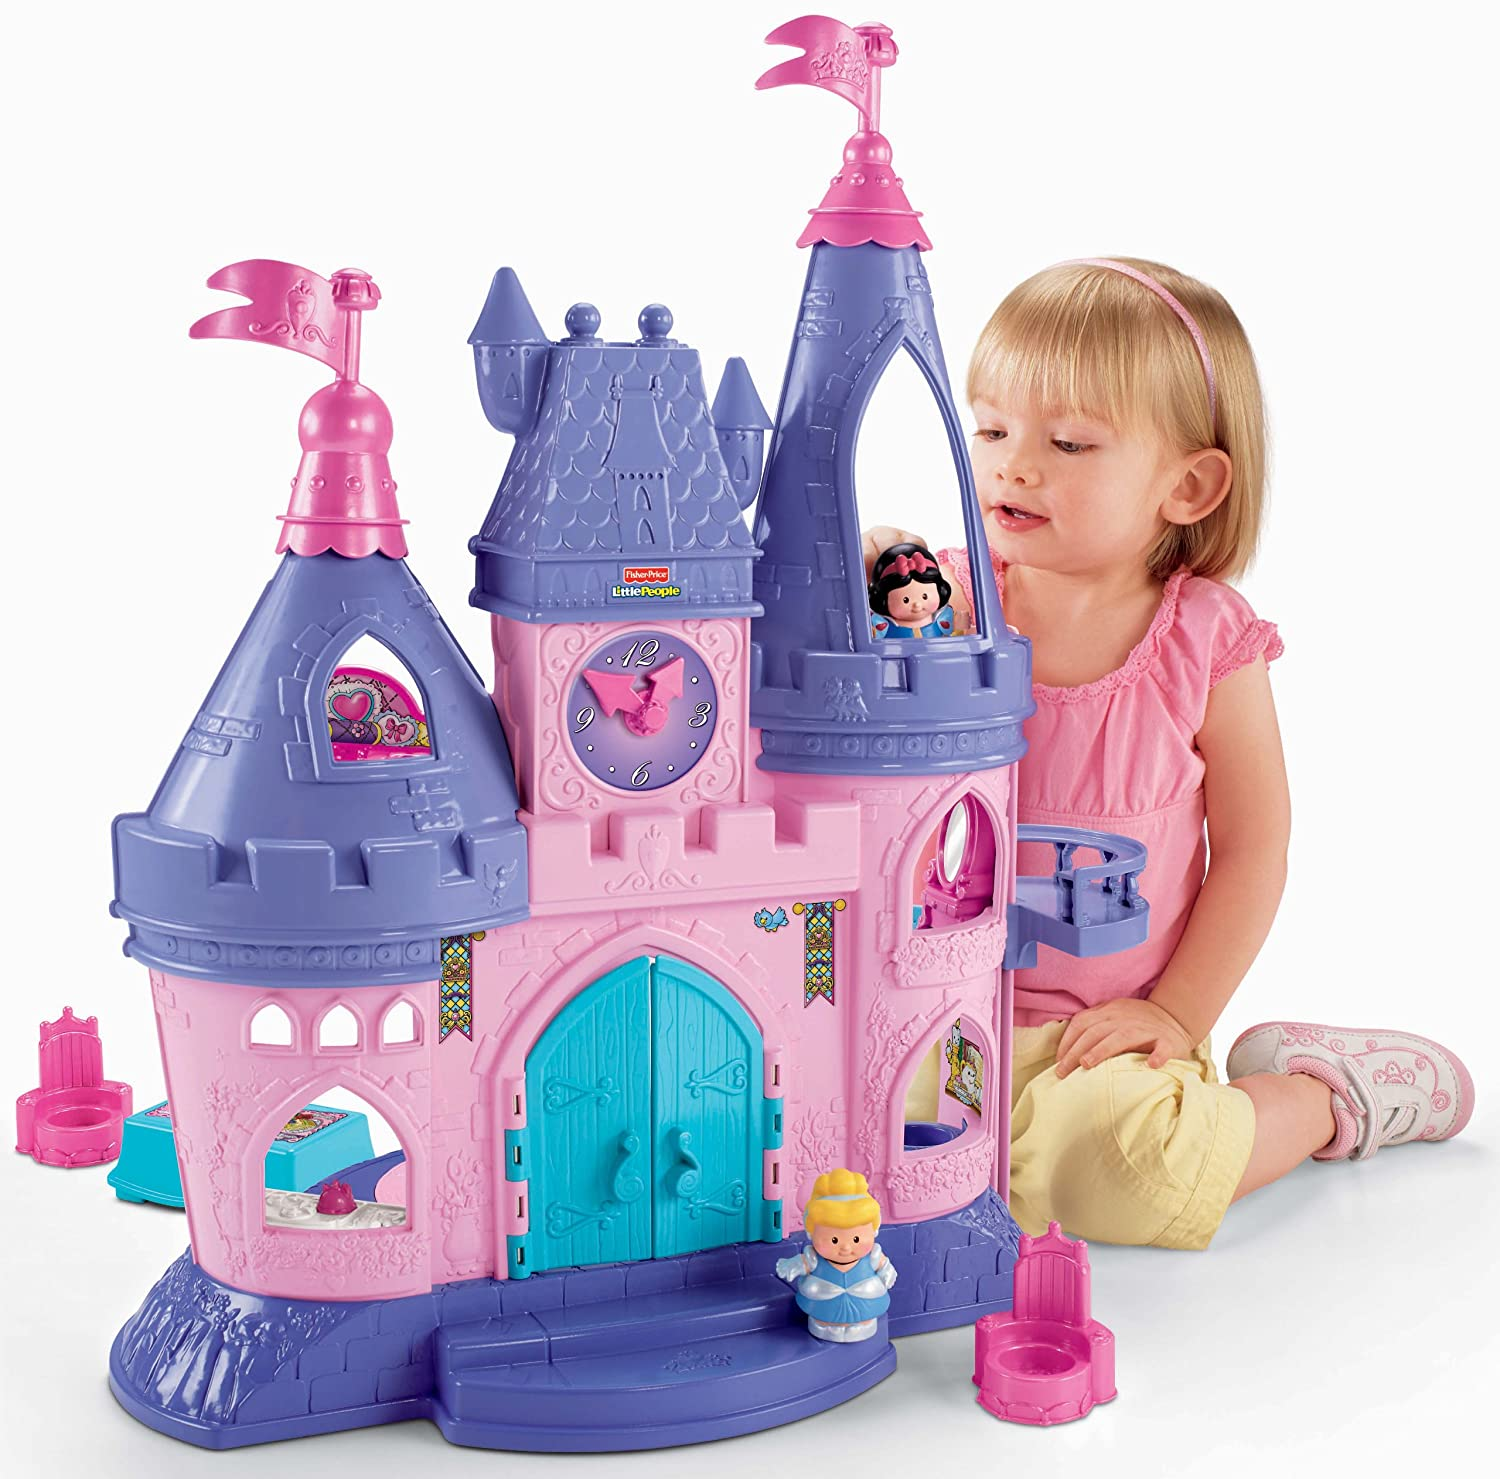 Toys Age 2 5 : Christmas gifts hot toys for toddler girls ages